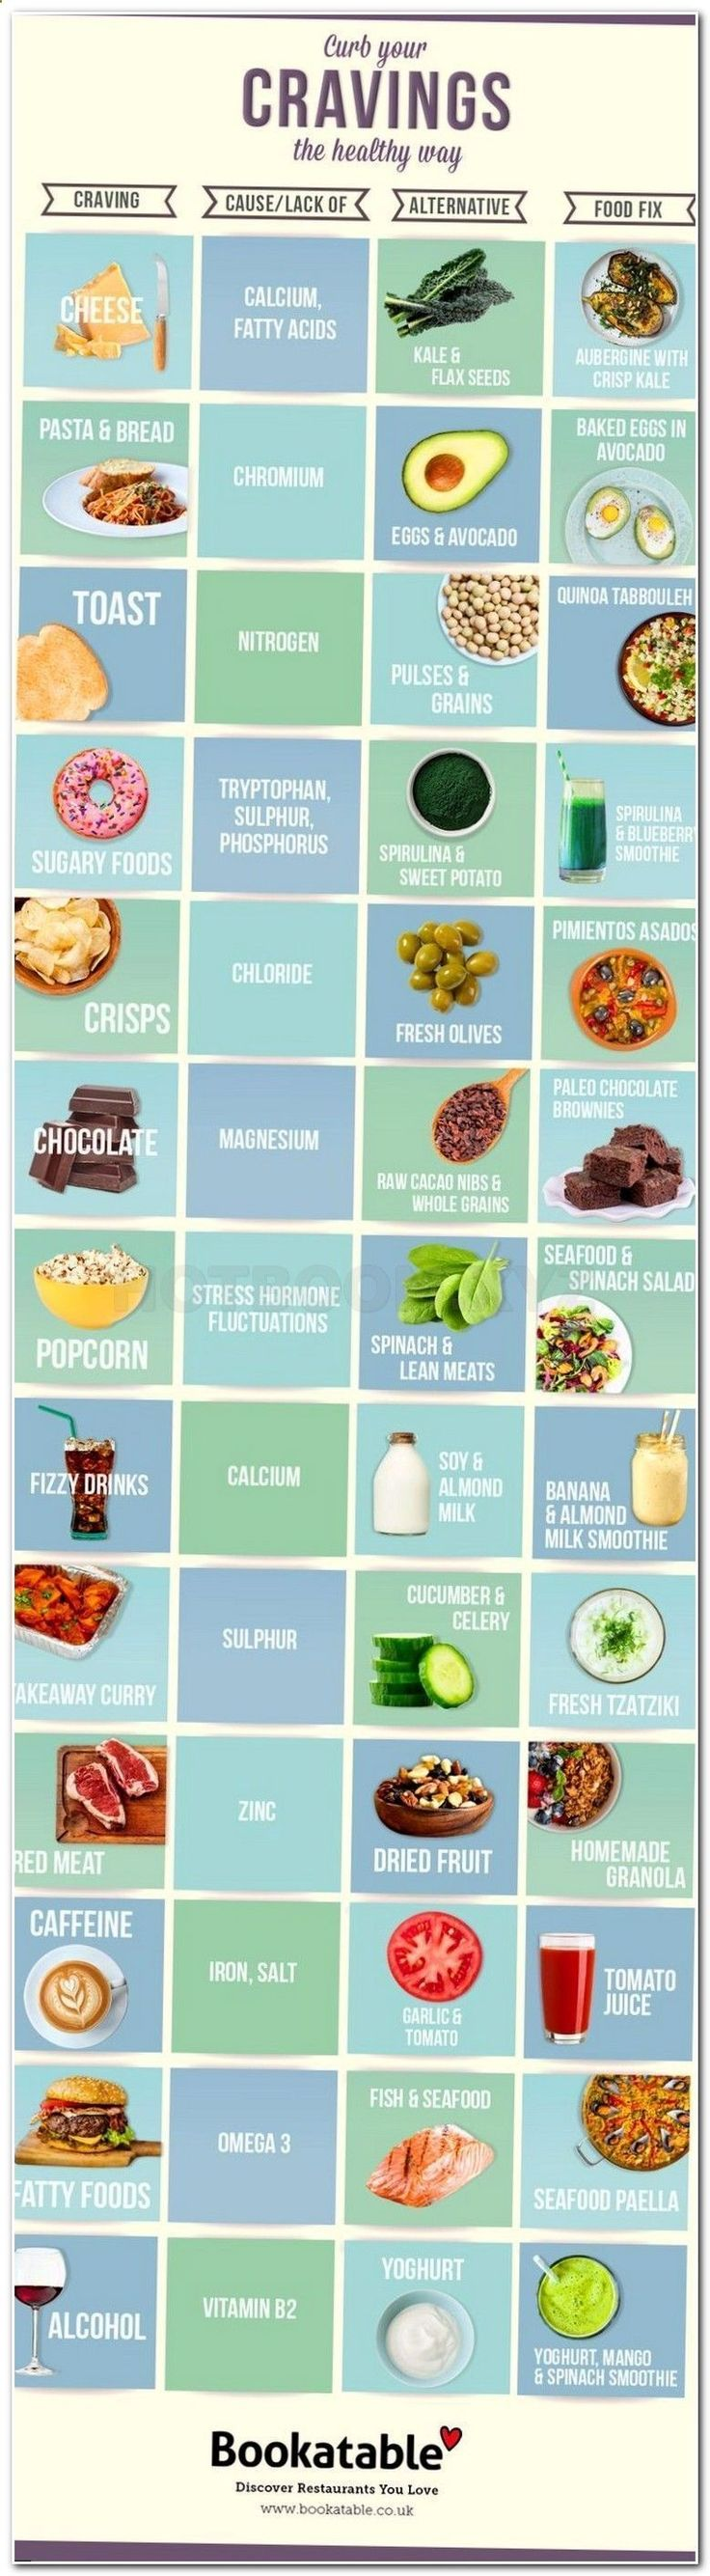 weight loss shakes best results